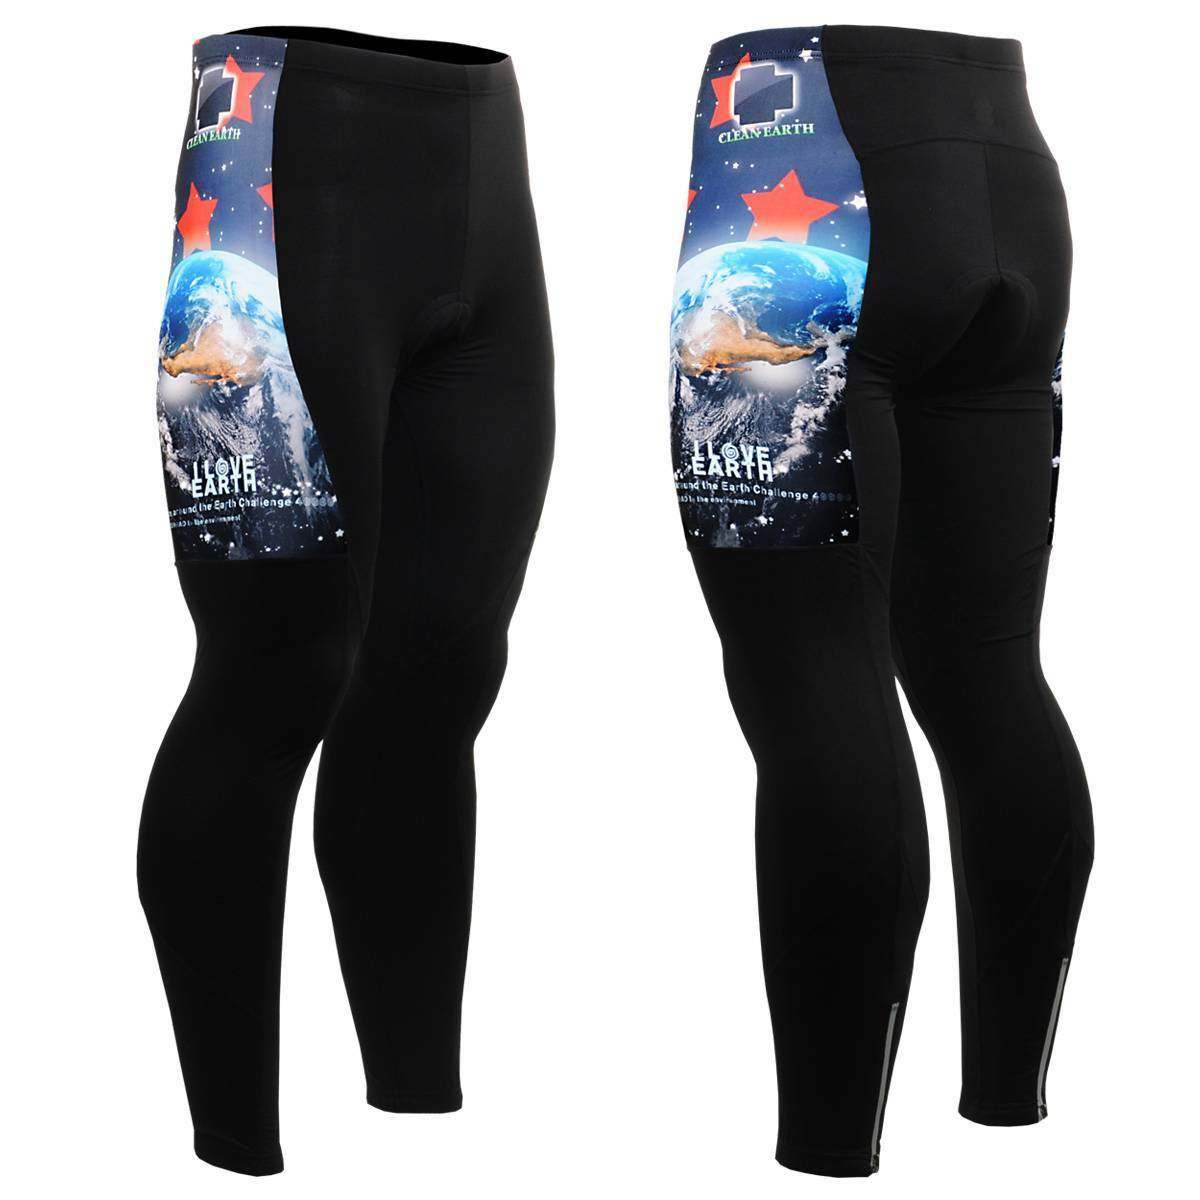 FIXGEAR LT-10 Cycling Pants Road Mountain Bike Wear MTB Bicycle Clothing